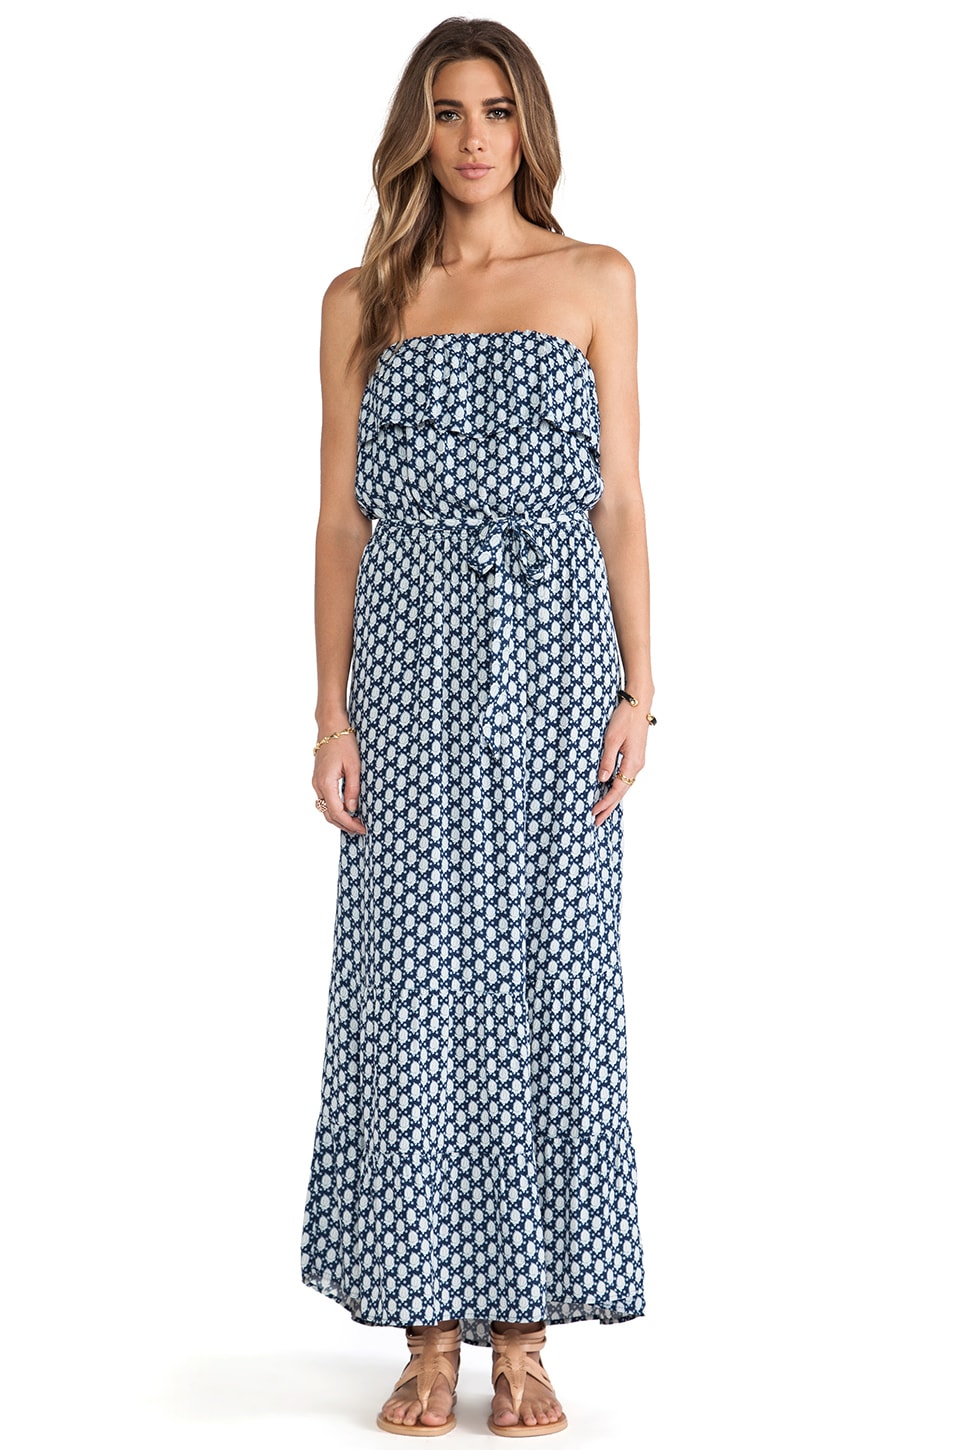 Soft Joie Memorie Dress in Indigo Blue